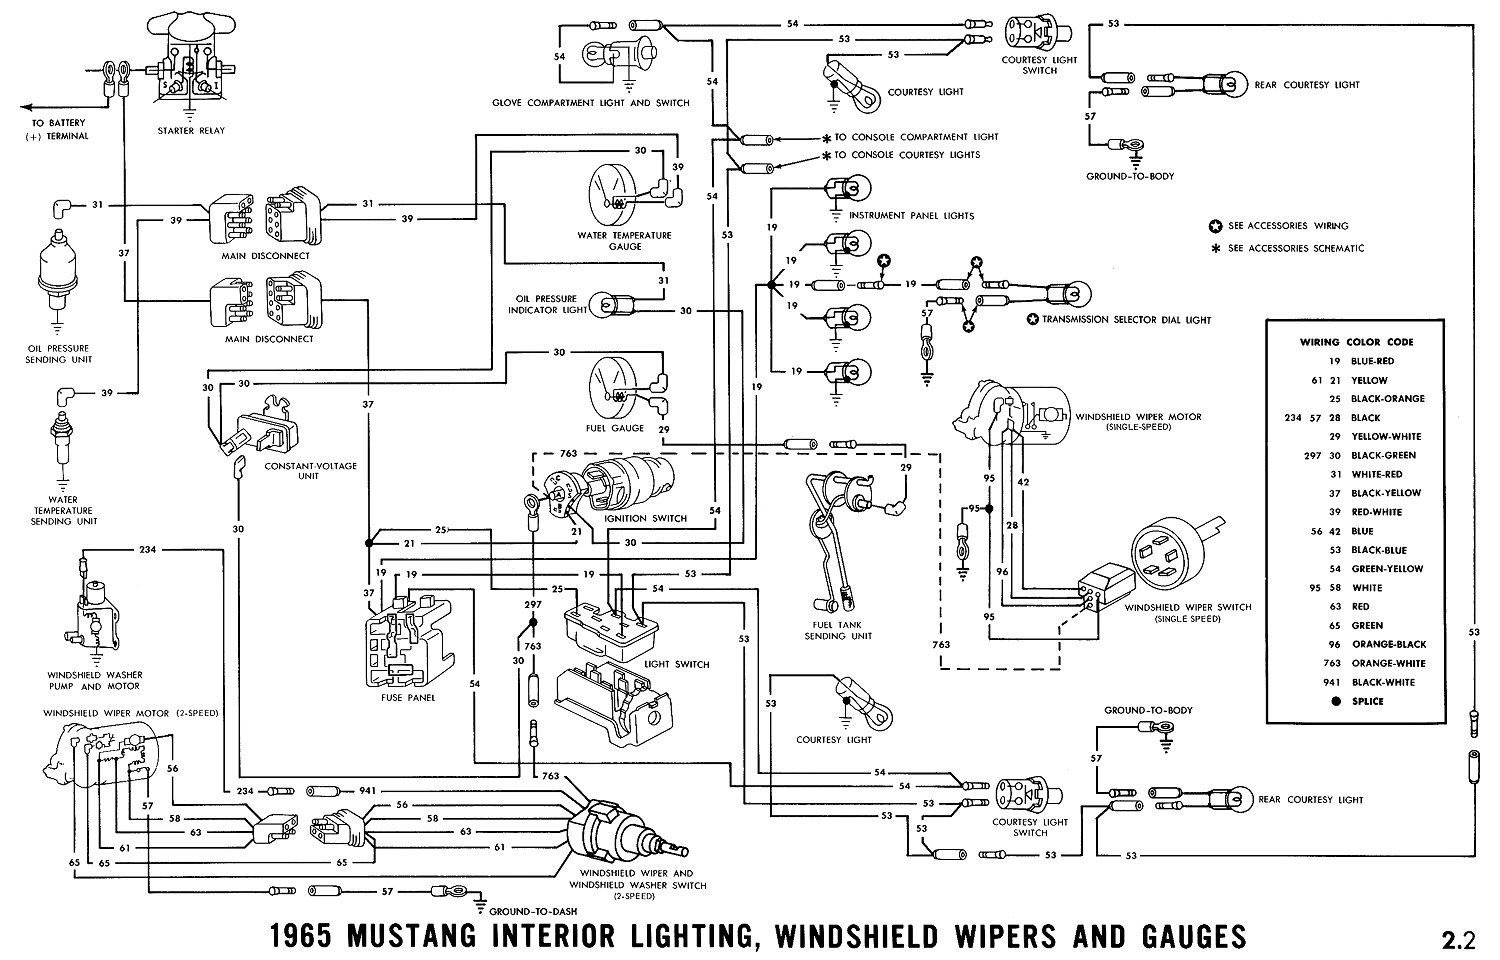 1970 chevelle wiring diagram in addition for wiring diagram \u2022 1985 gmc truck fuse diagram electrical schematic fuse box diagram wire diagram rh economiaynegocios co 1970 chevelle radio wiring 1970 chevelle motor wiring diagram